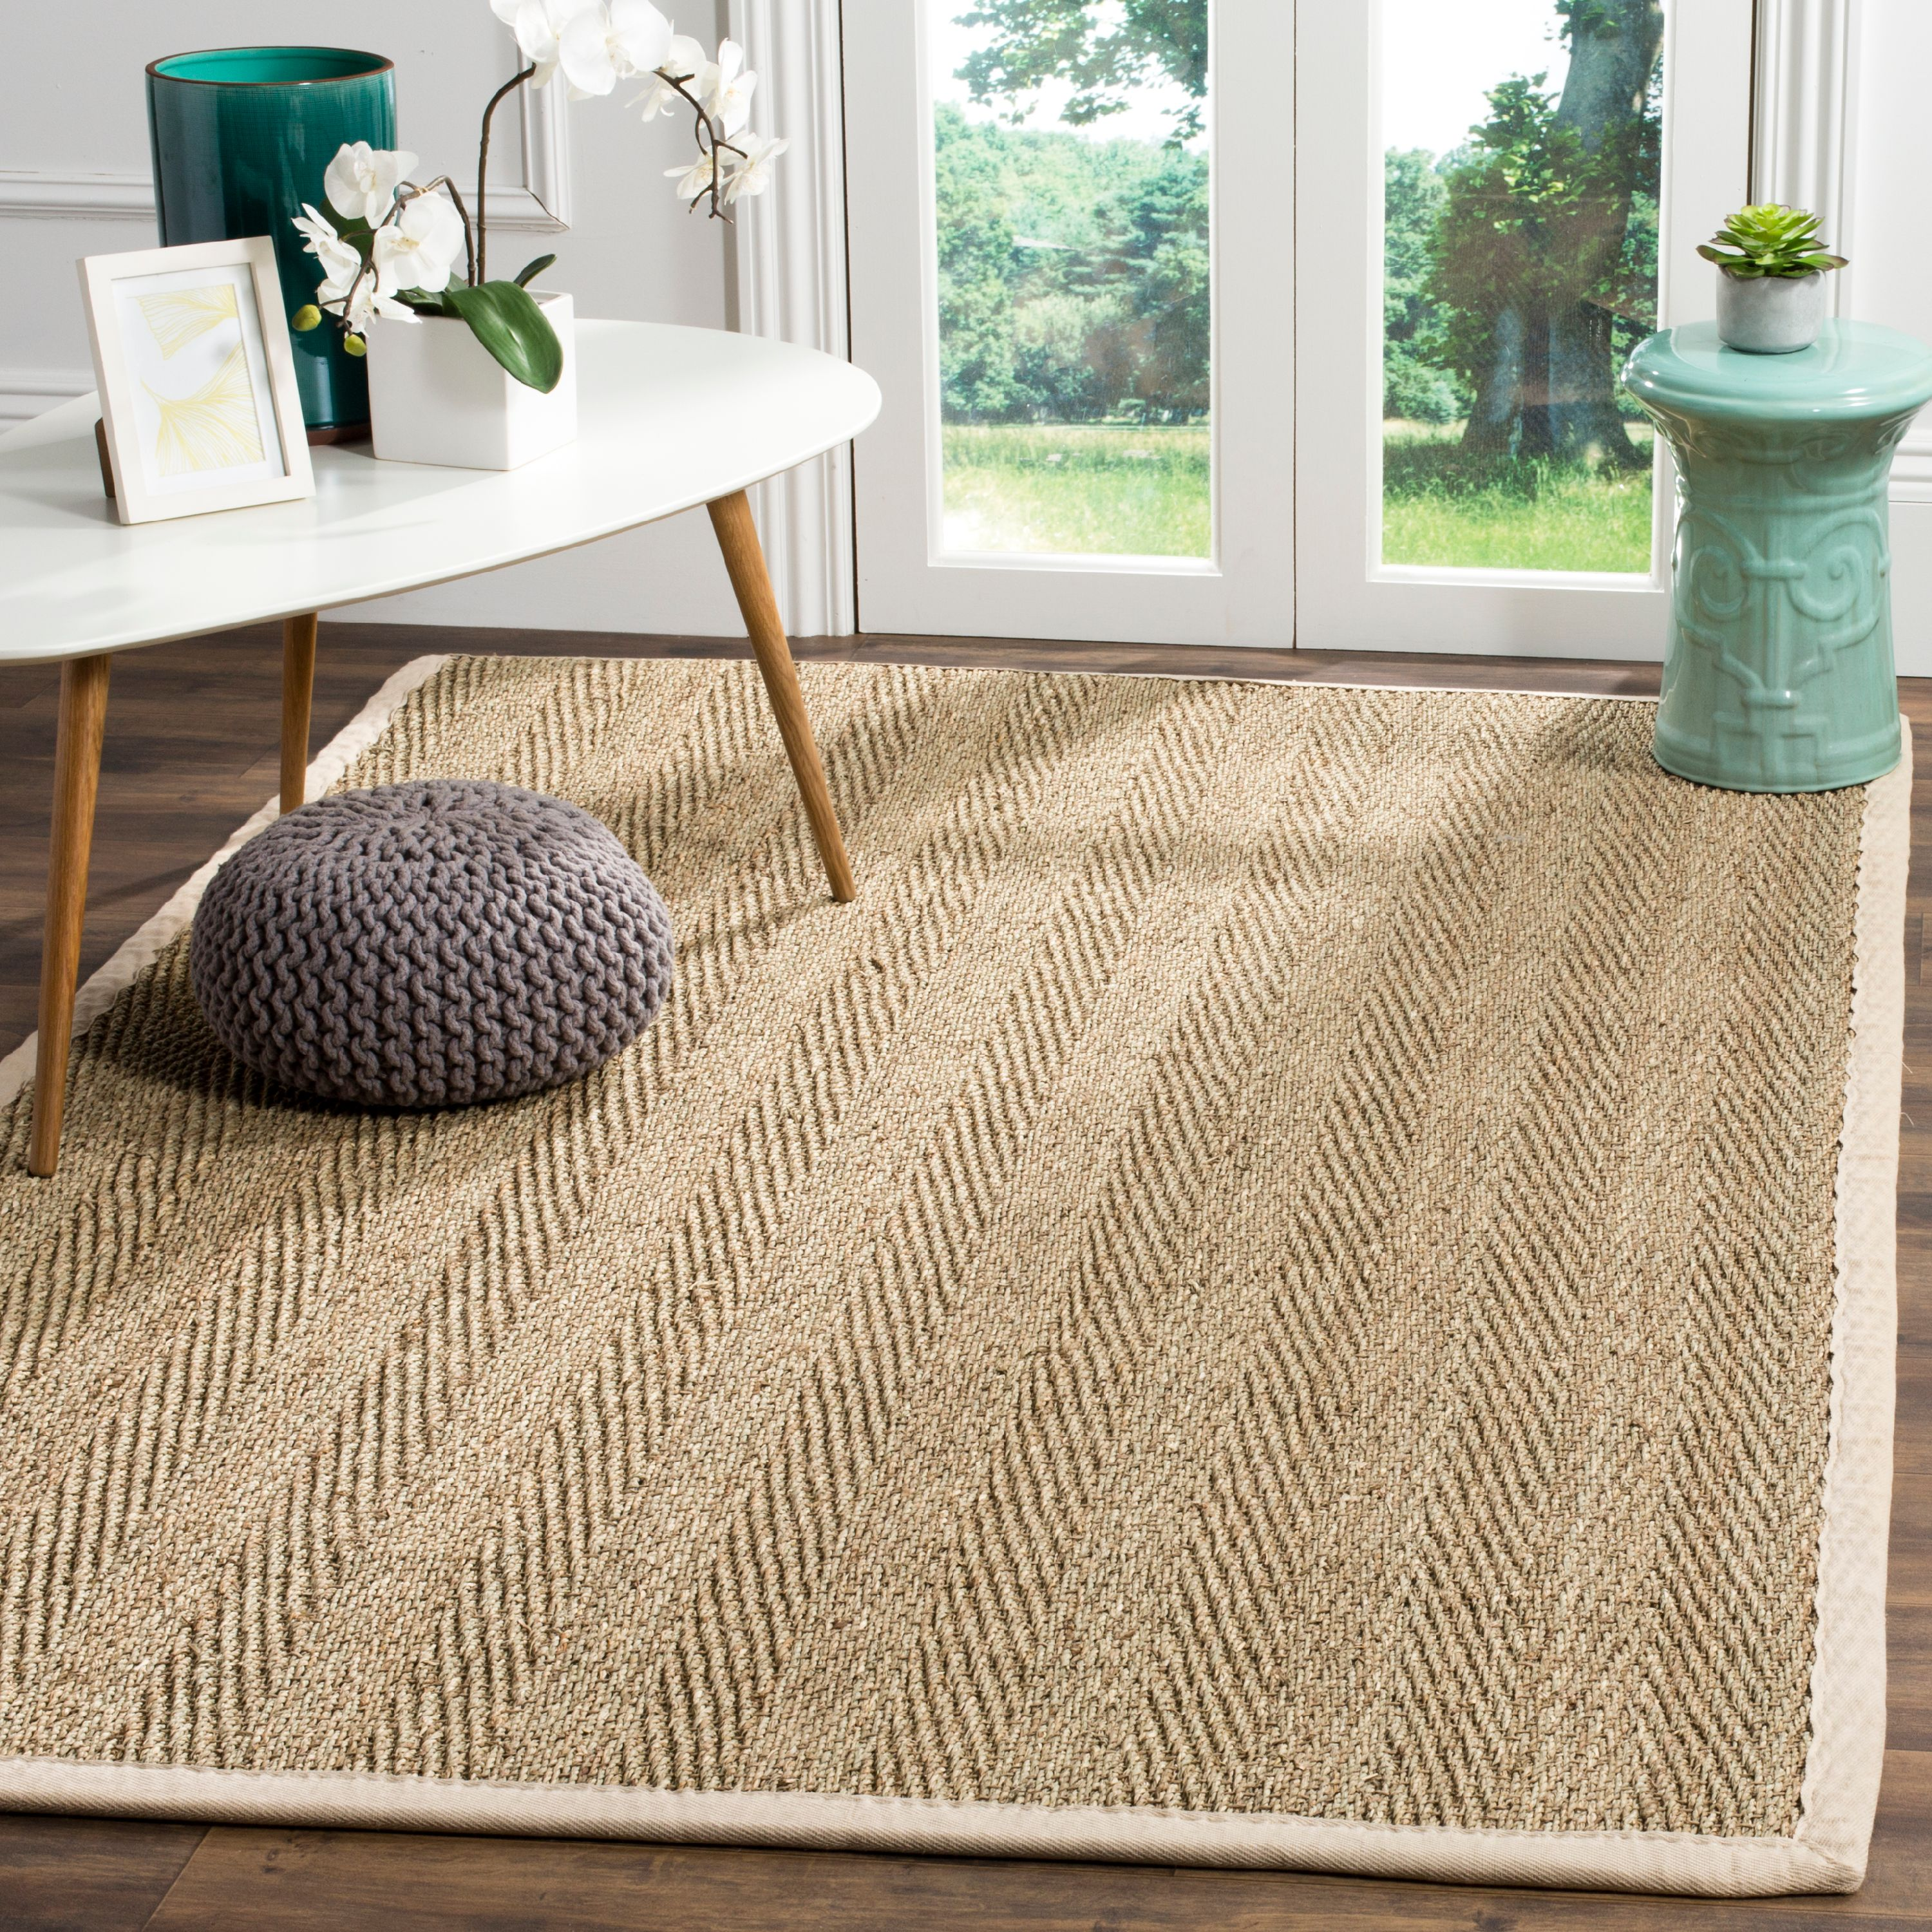 Safavieh Natural Fiber Maisy Border Area Rug or Runner